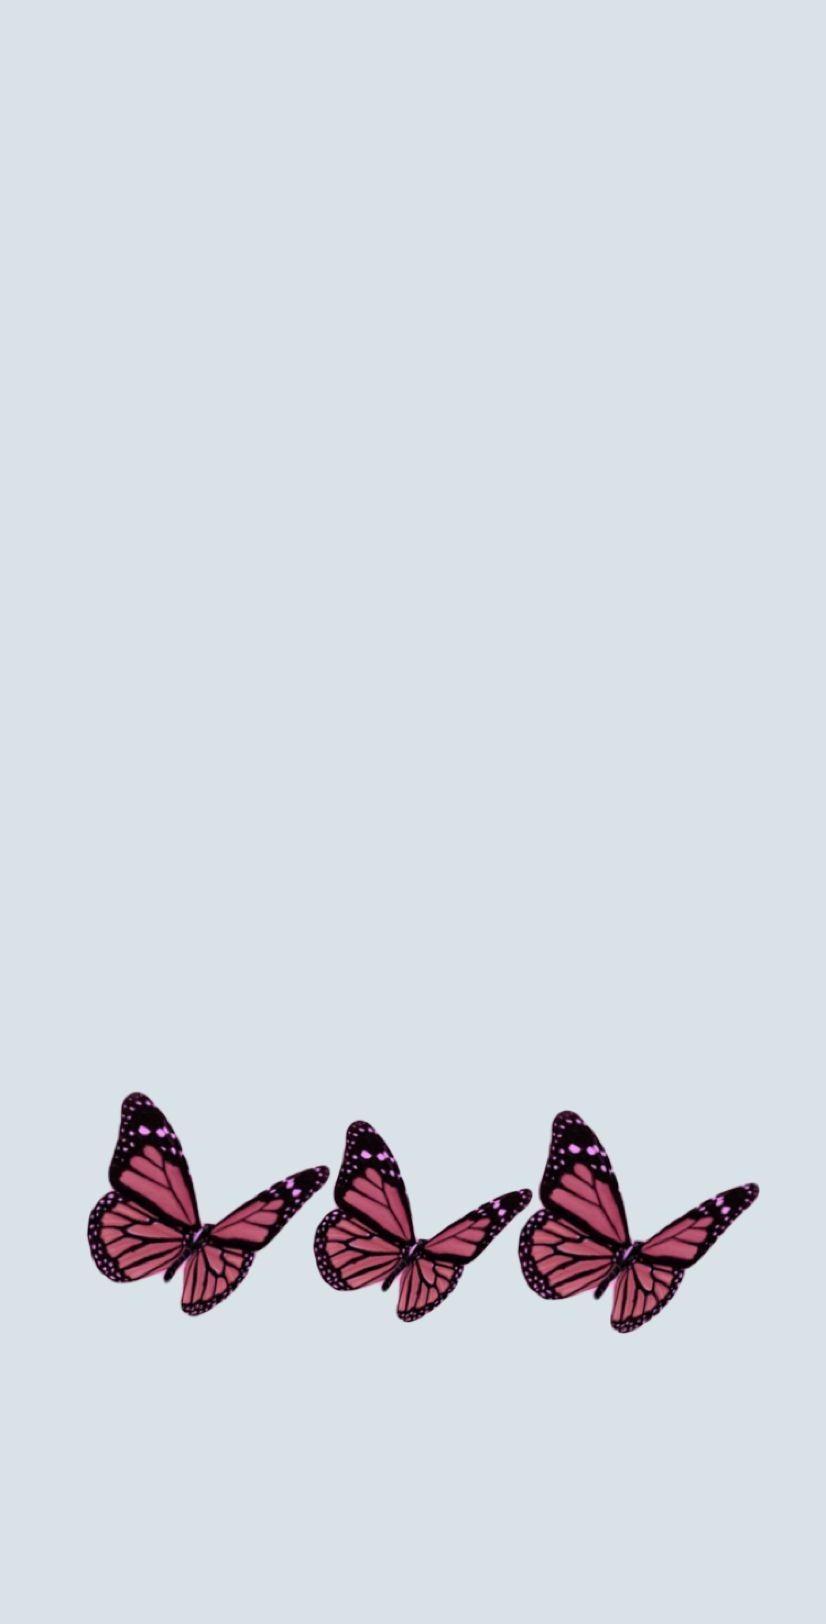 Pink Butterfly S With Light Blue Background Wallpapers